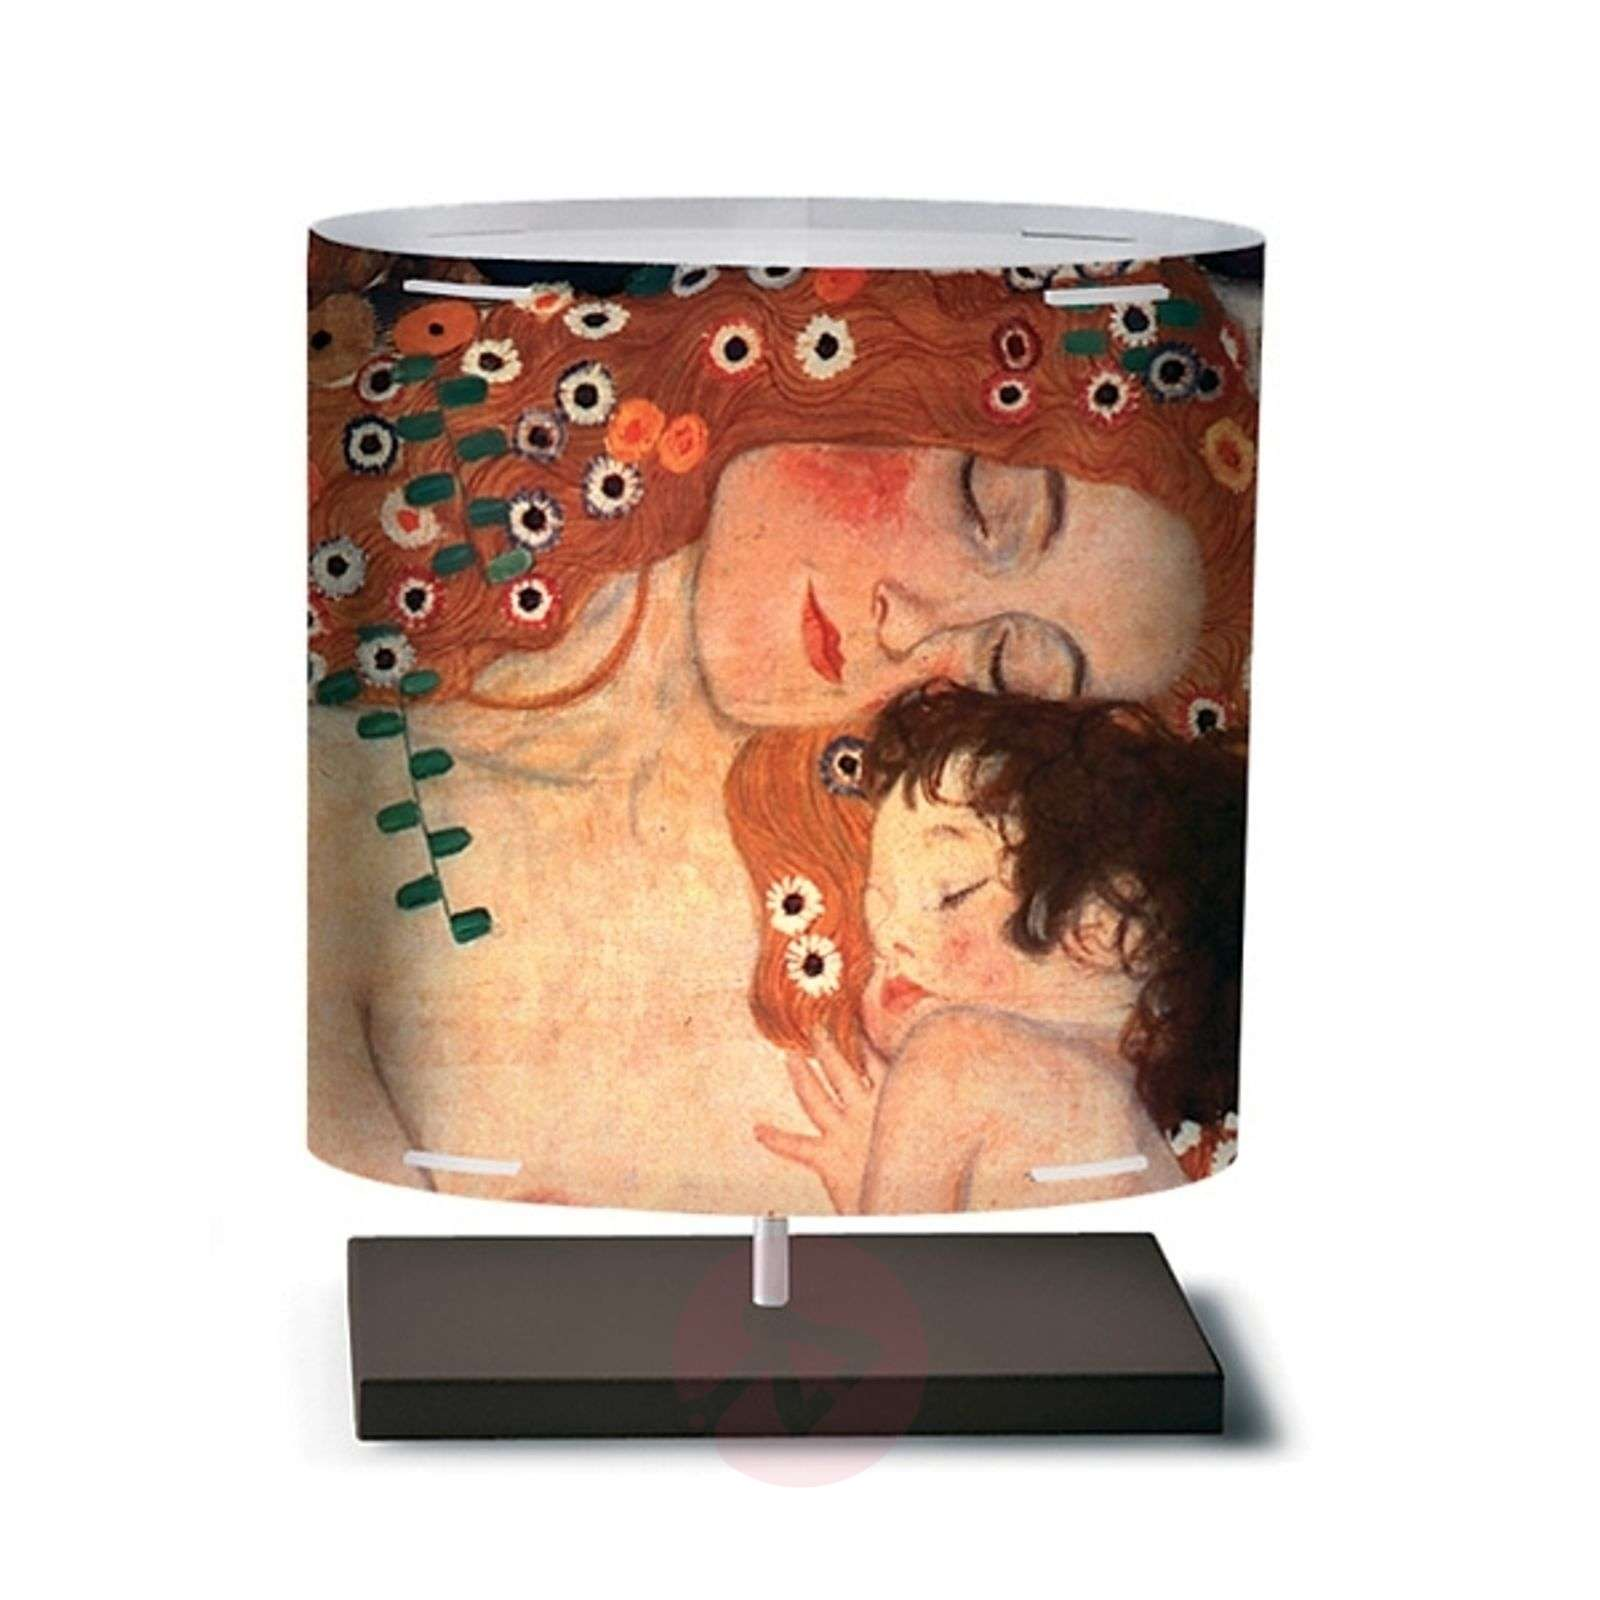 Klimt II table lamp with art motif-1056046-01